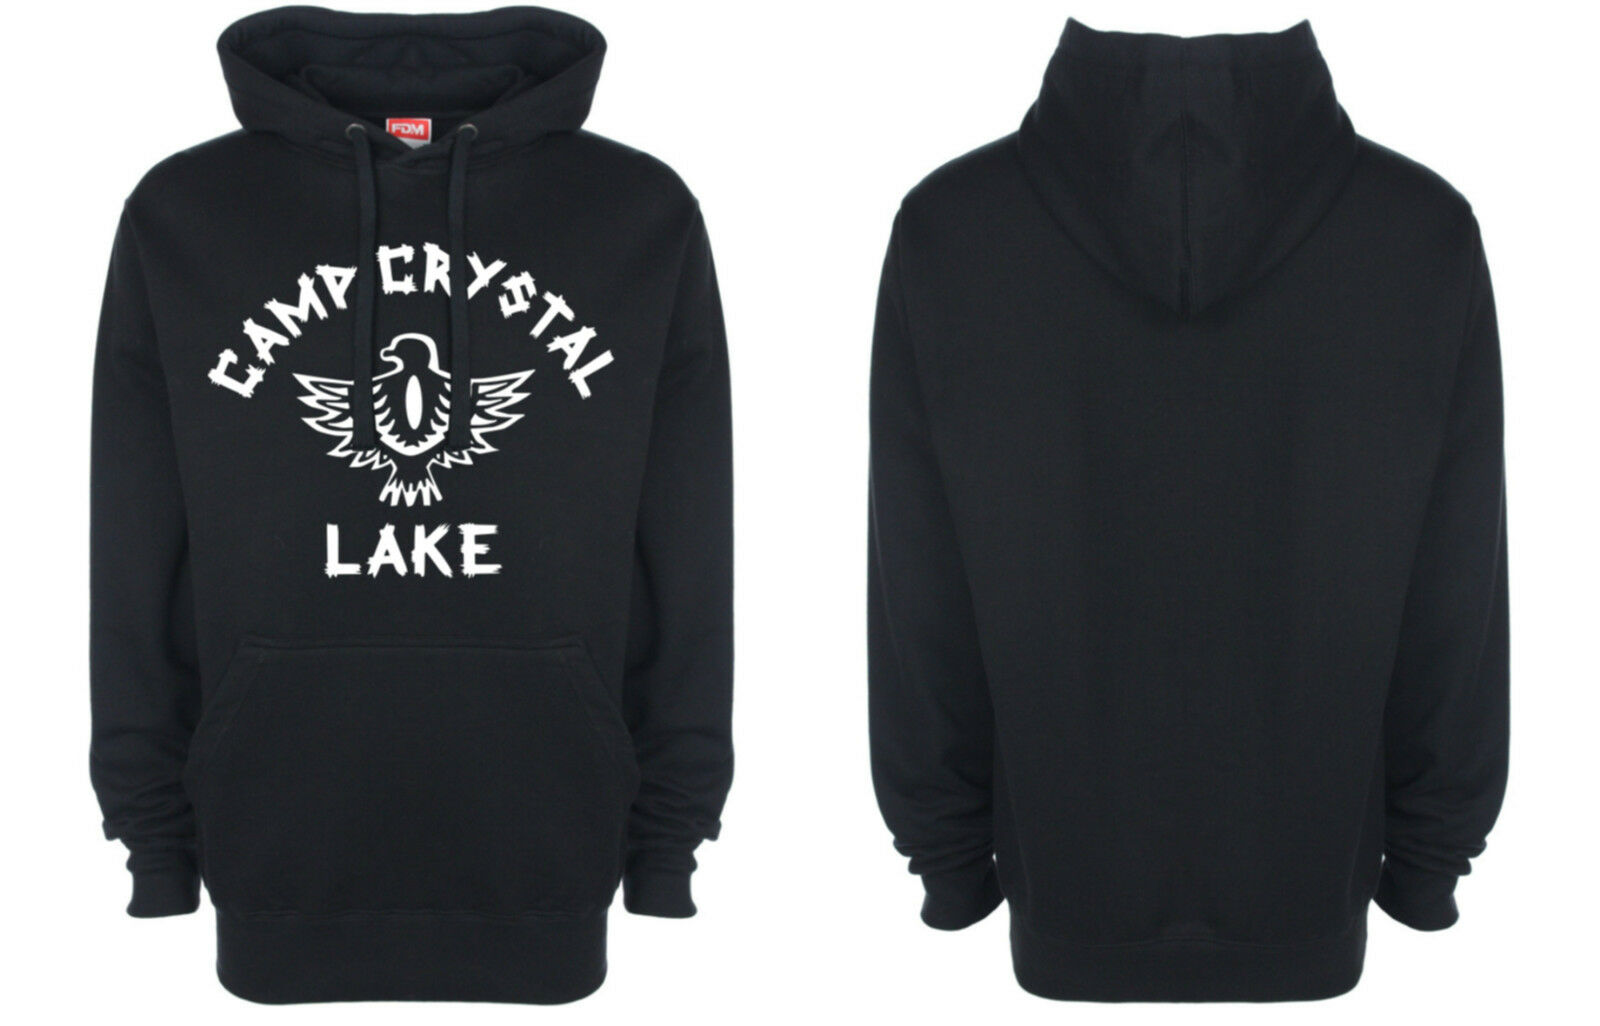 Camp Crystal Lake, Hoodie, Friday the 13th, Horror, Movie, Retro, Costume, New